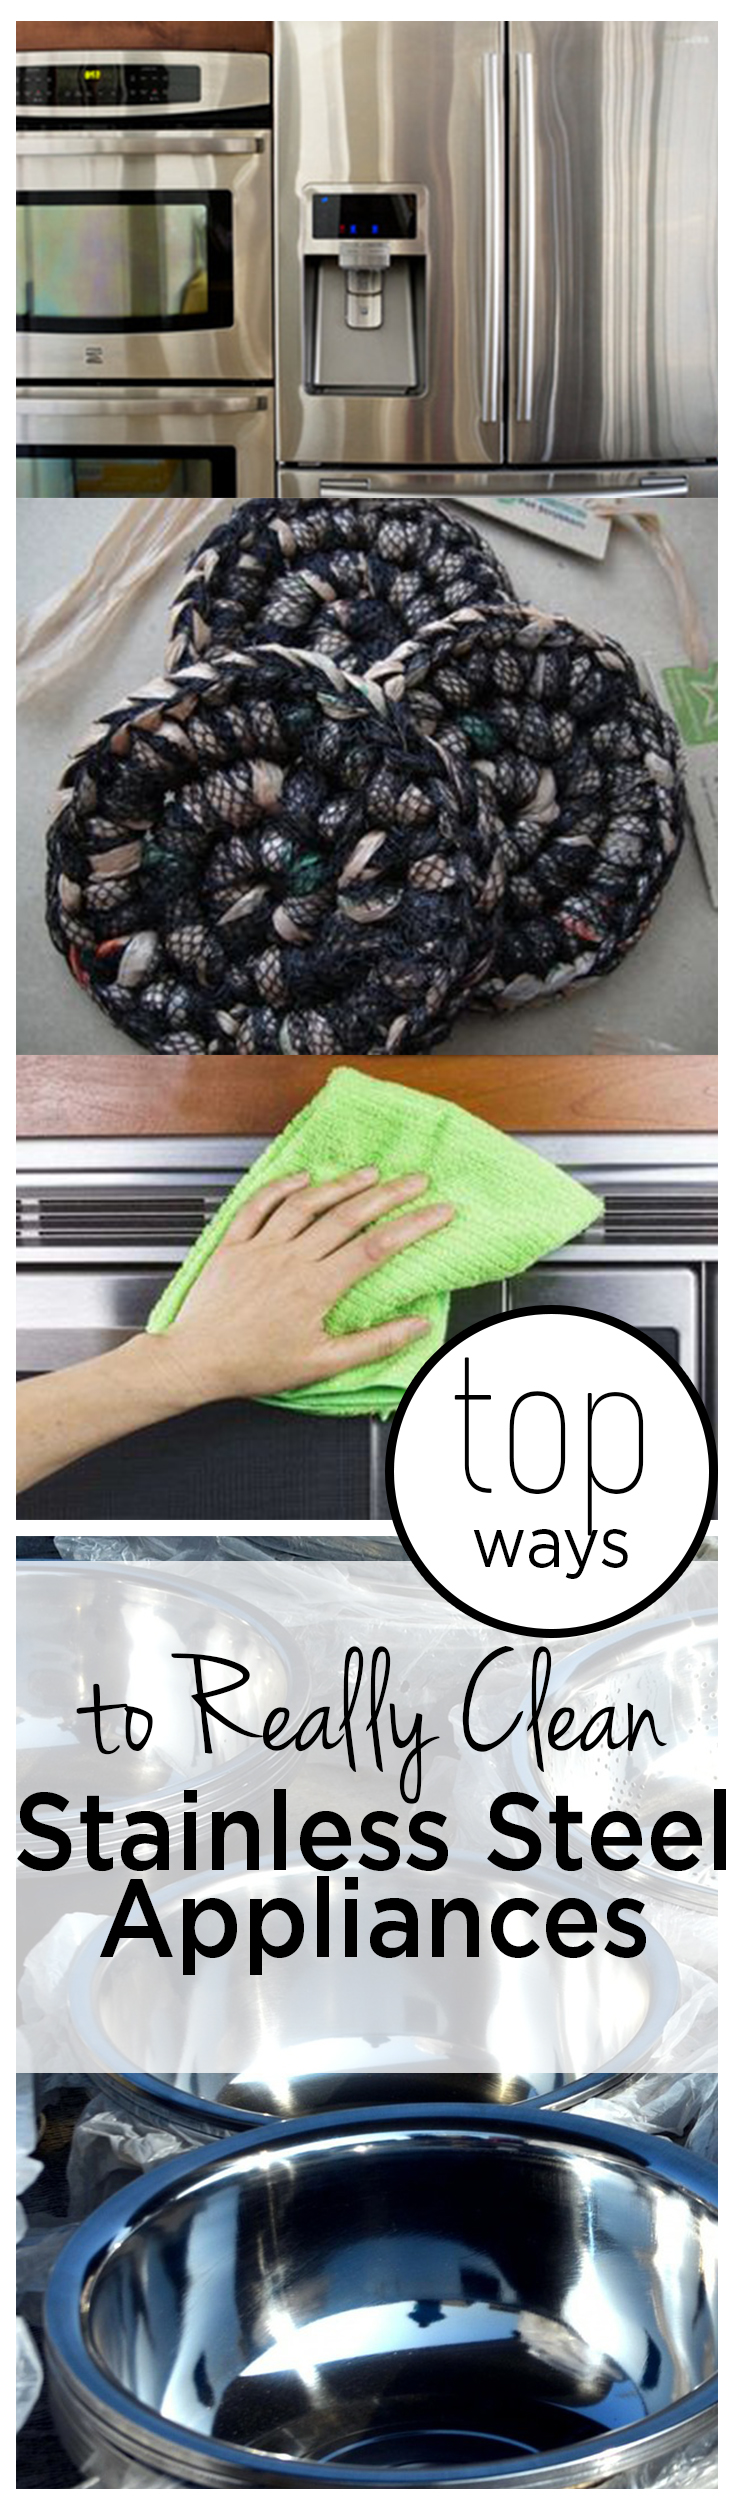 Top Ways to Really Clean Stainless Steel Appliances